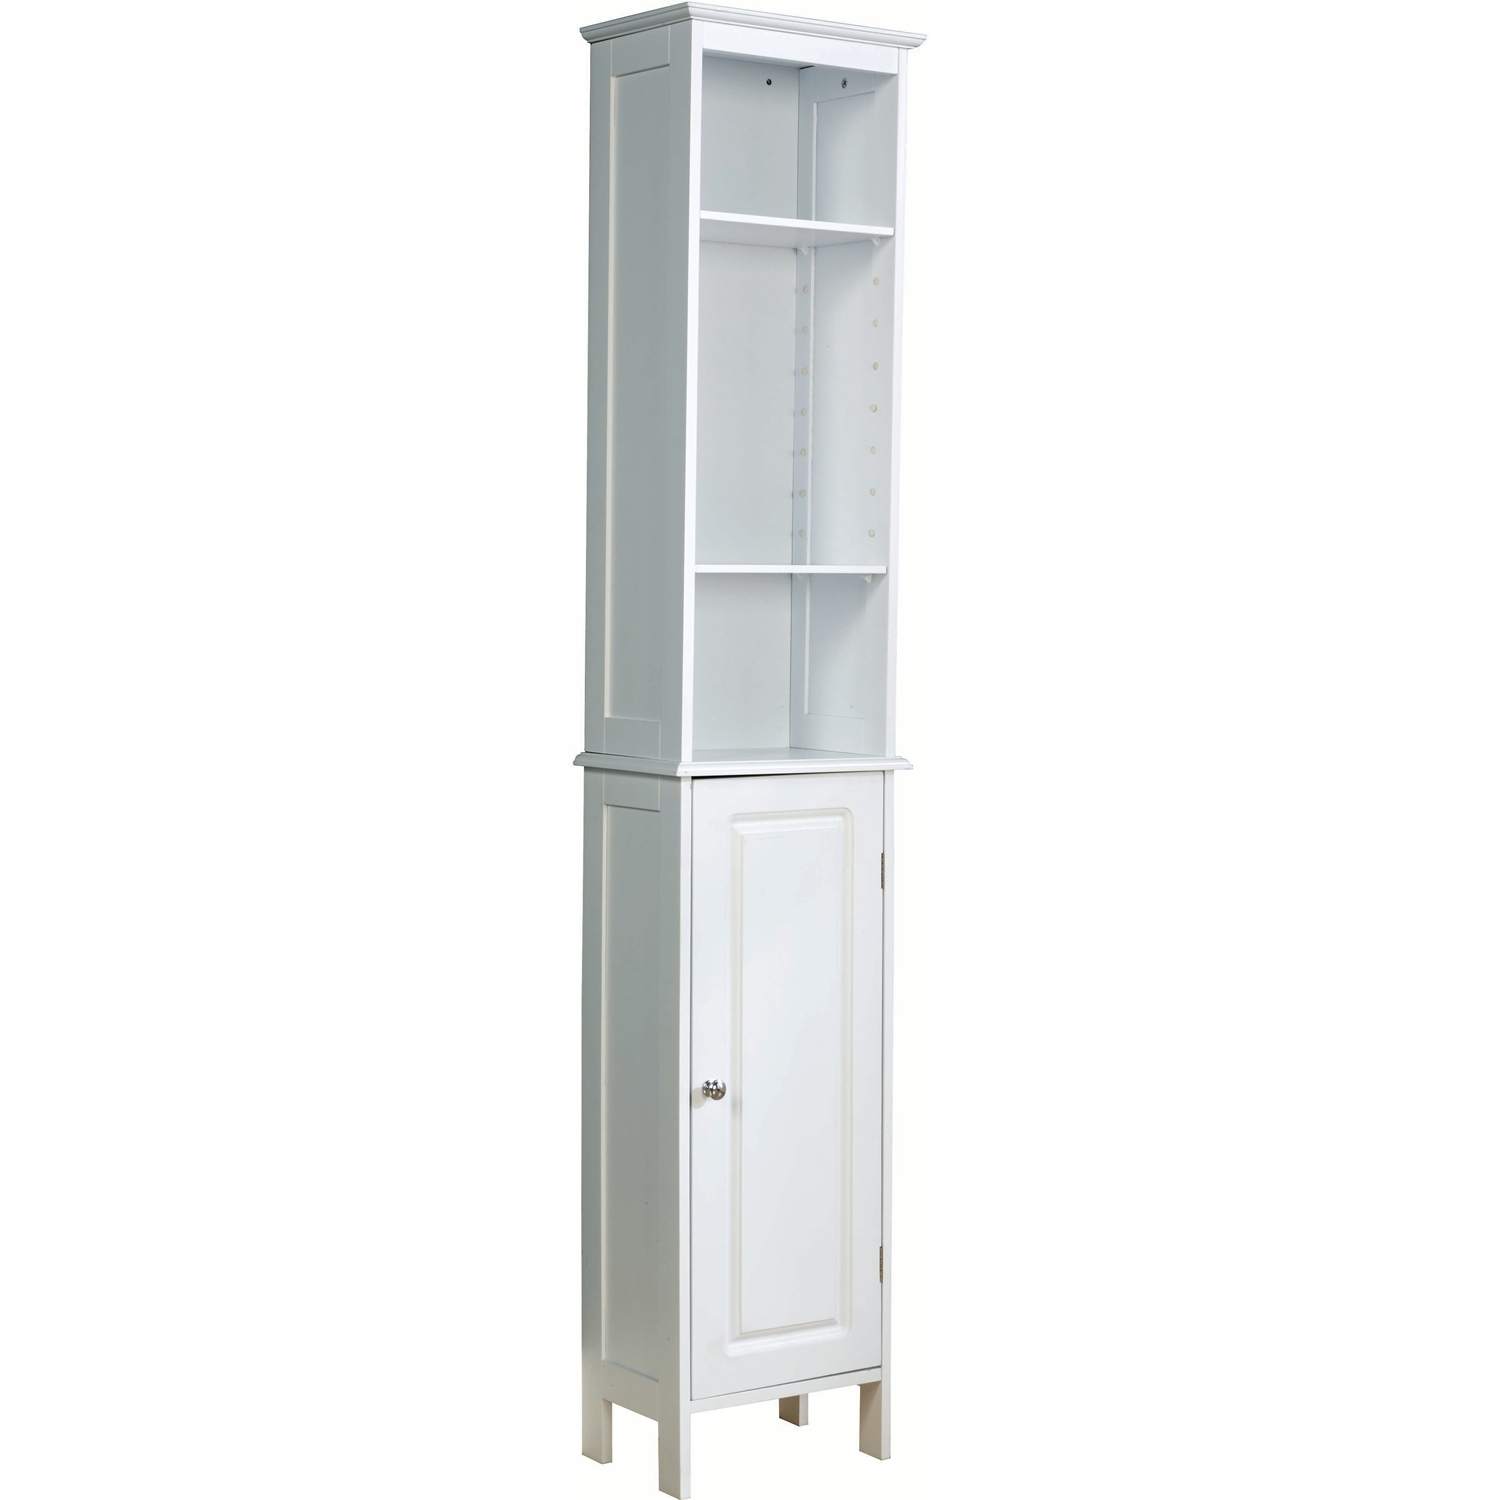 Tall Bathroom Cabinet White Cabinet Ideas in sizing 1500 X 1500